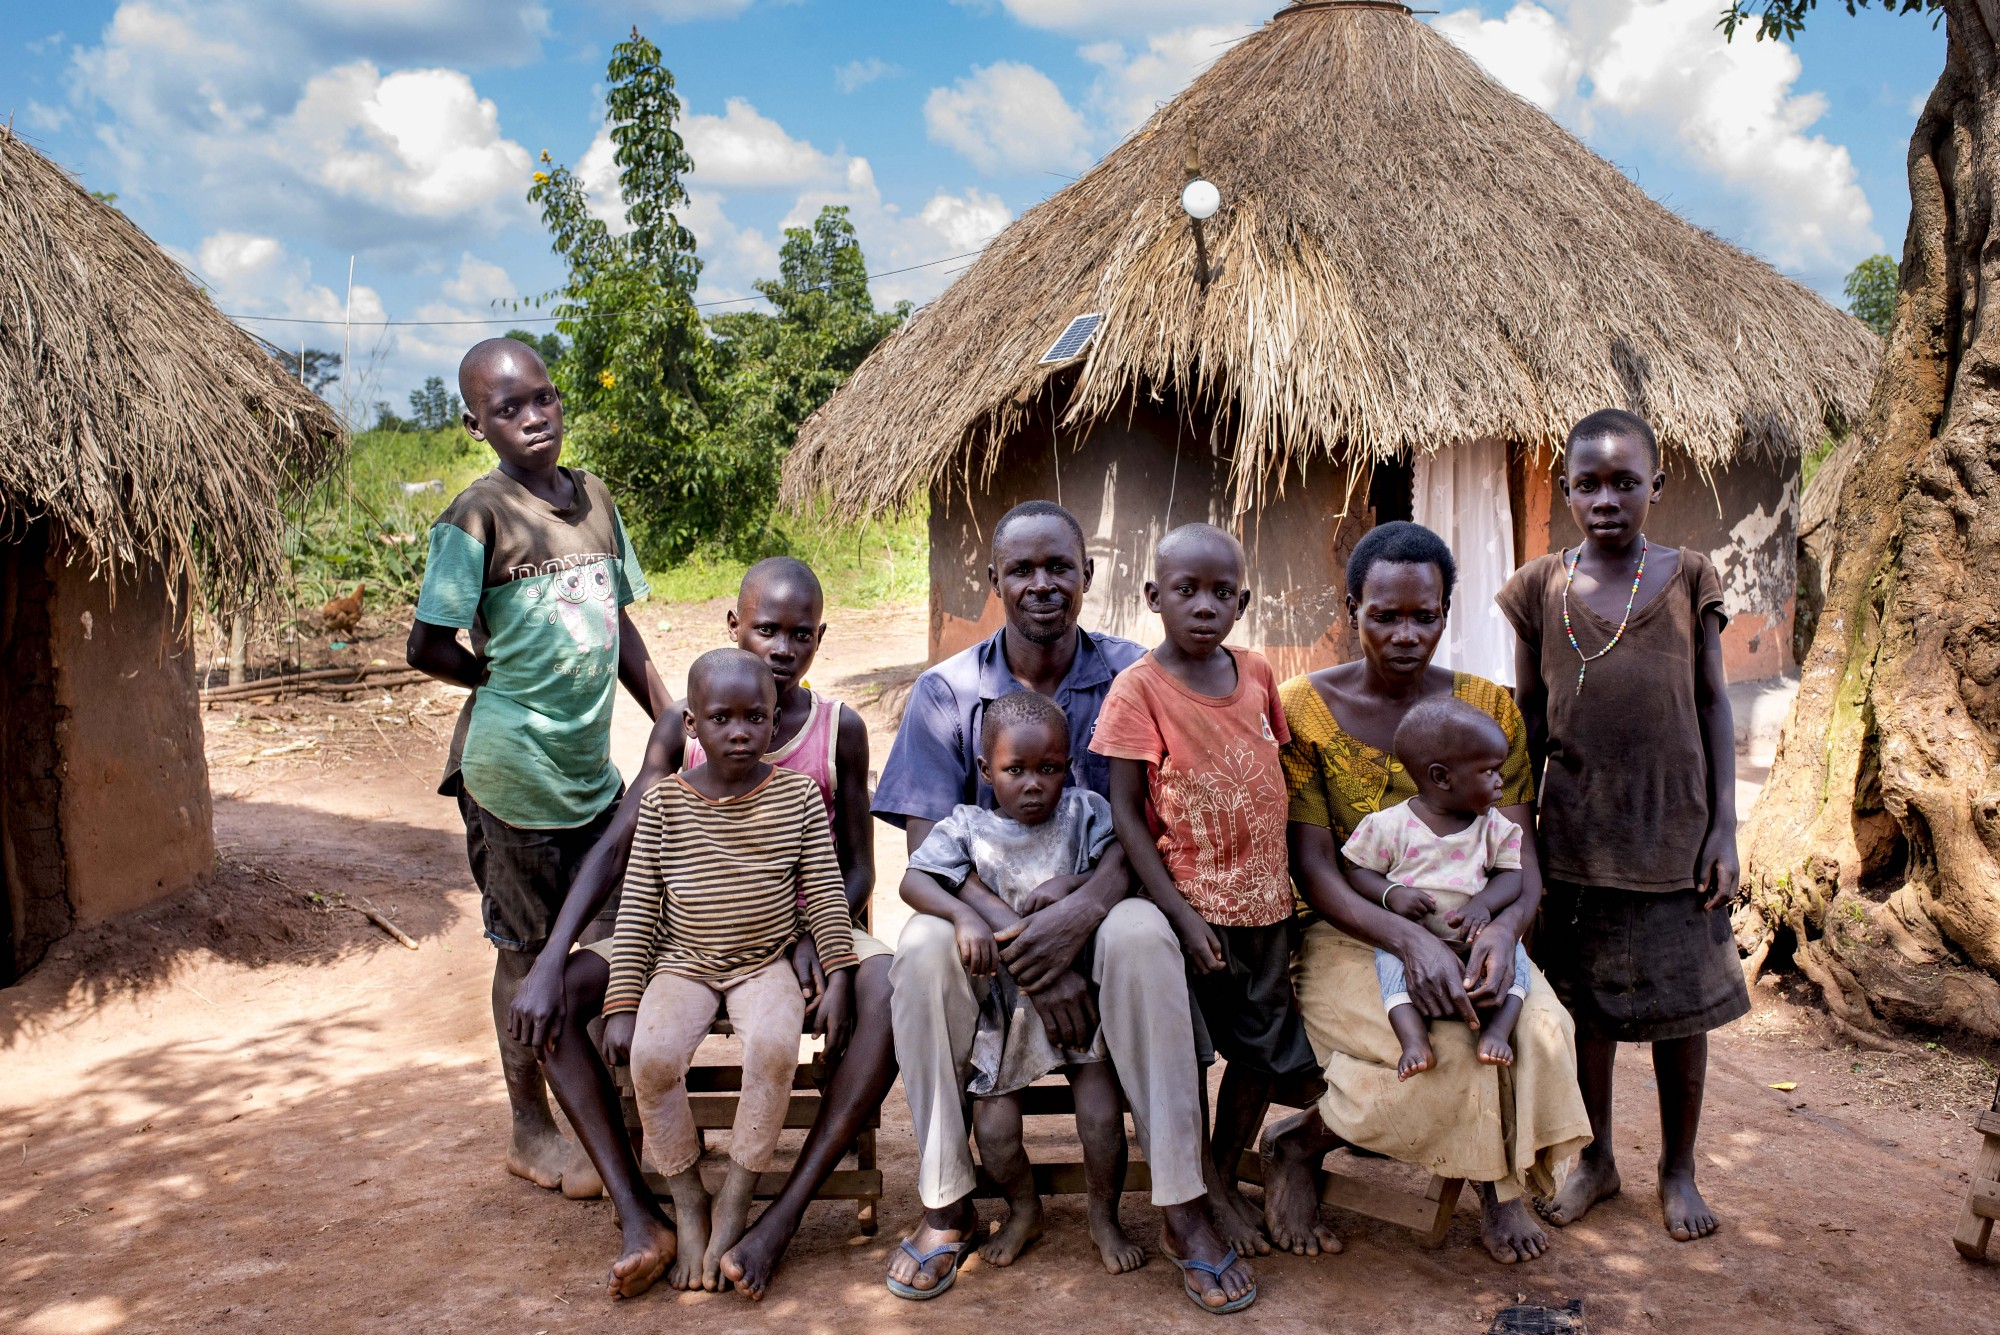 Patrick Ojok was the first BrightLife customer in Kiryandongo settlement in Uganda as a result of the USAID/Power Africa De-Risking PAYGO Solar Home System project